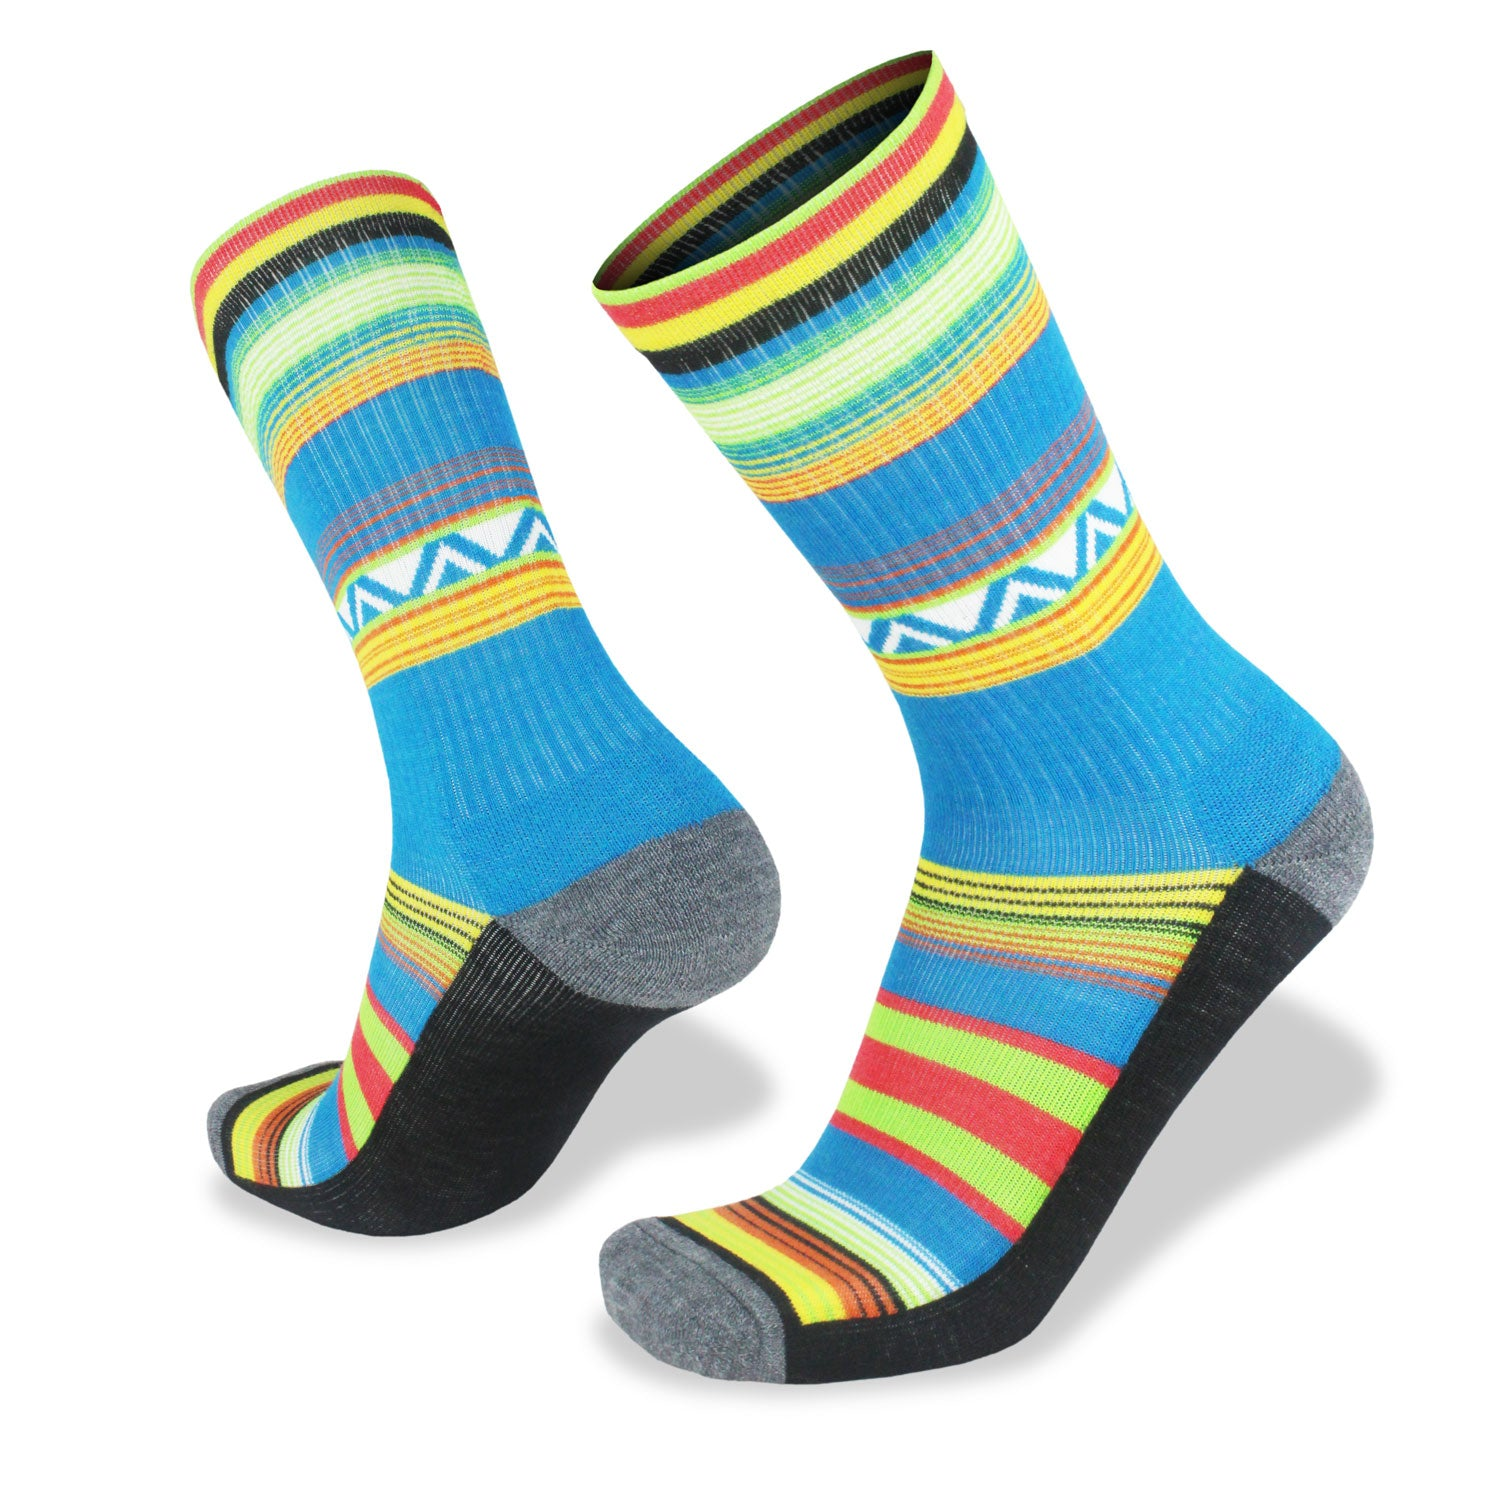 Wilderness Wear Fusion Light Hiking Socks (Unisex) - Tribal - Find Your Feet Australia Hobart Launceston Tasmania